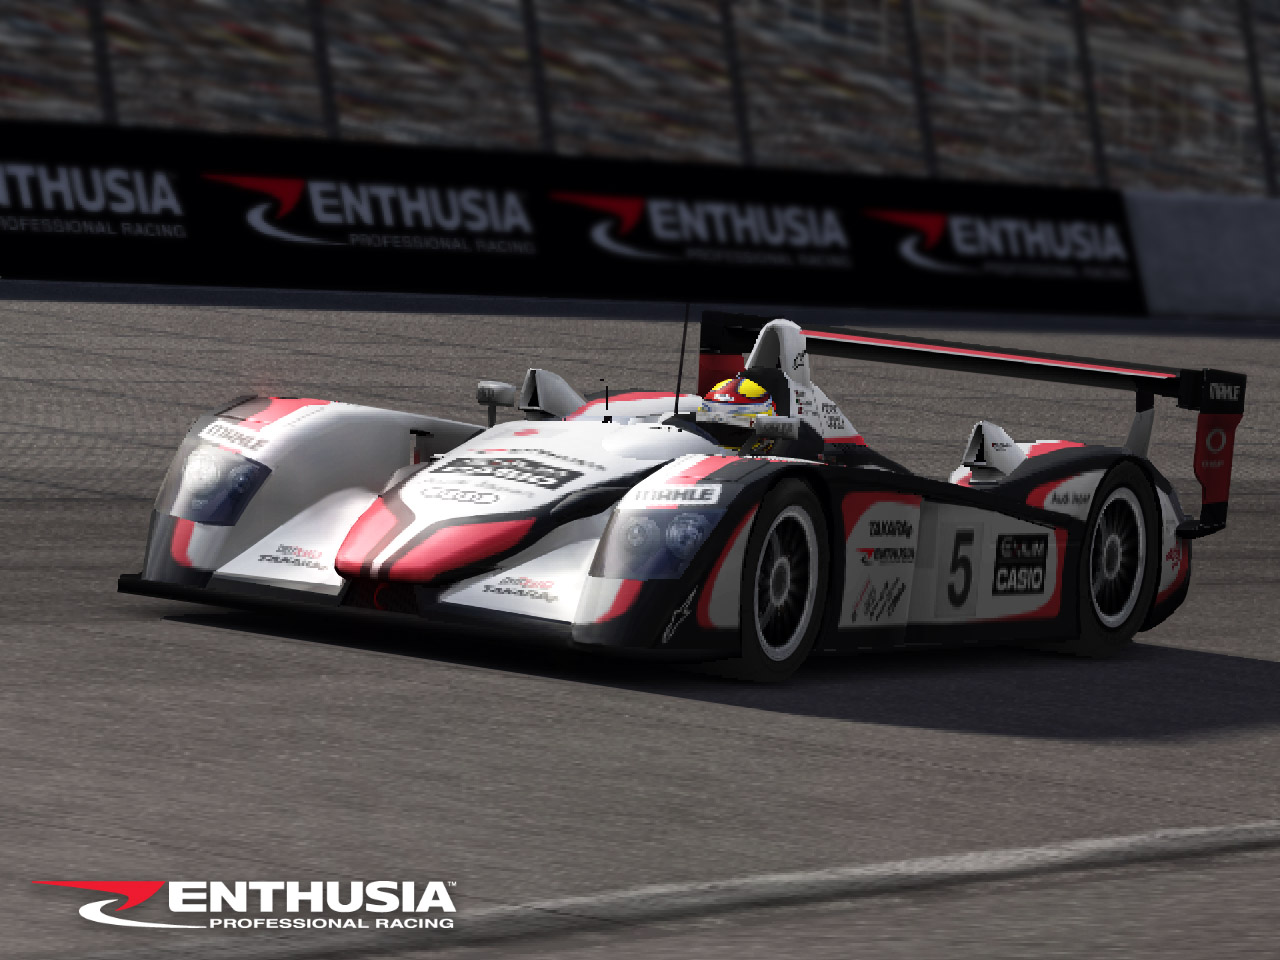 Enthusia: Professional Racing - 47601